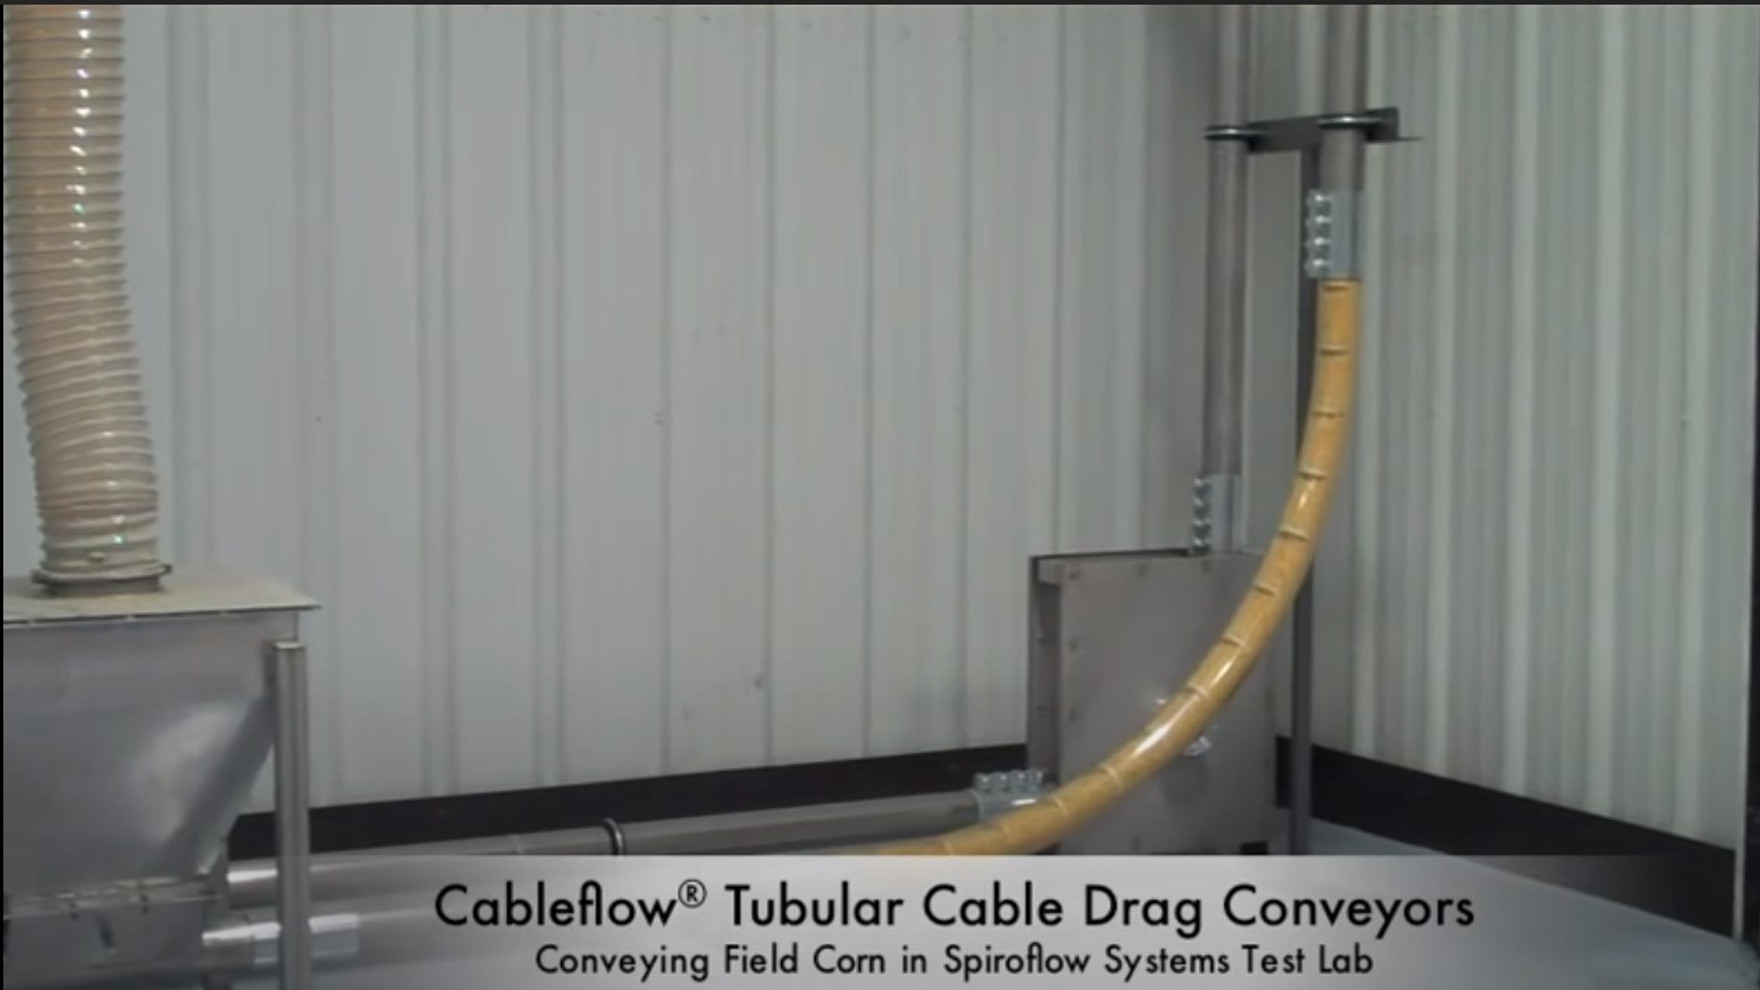 Video of Cable Drag Conveyor